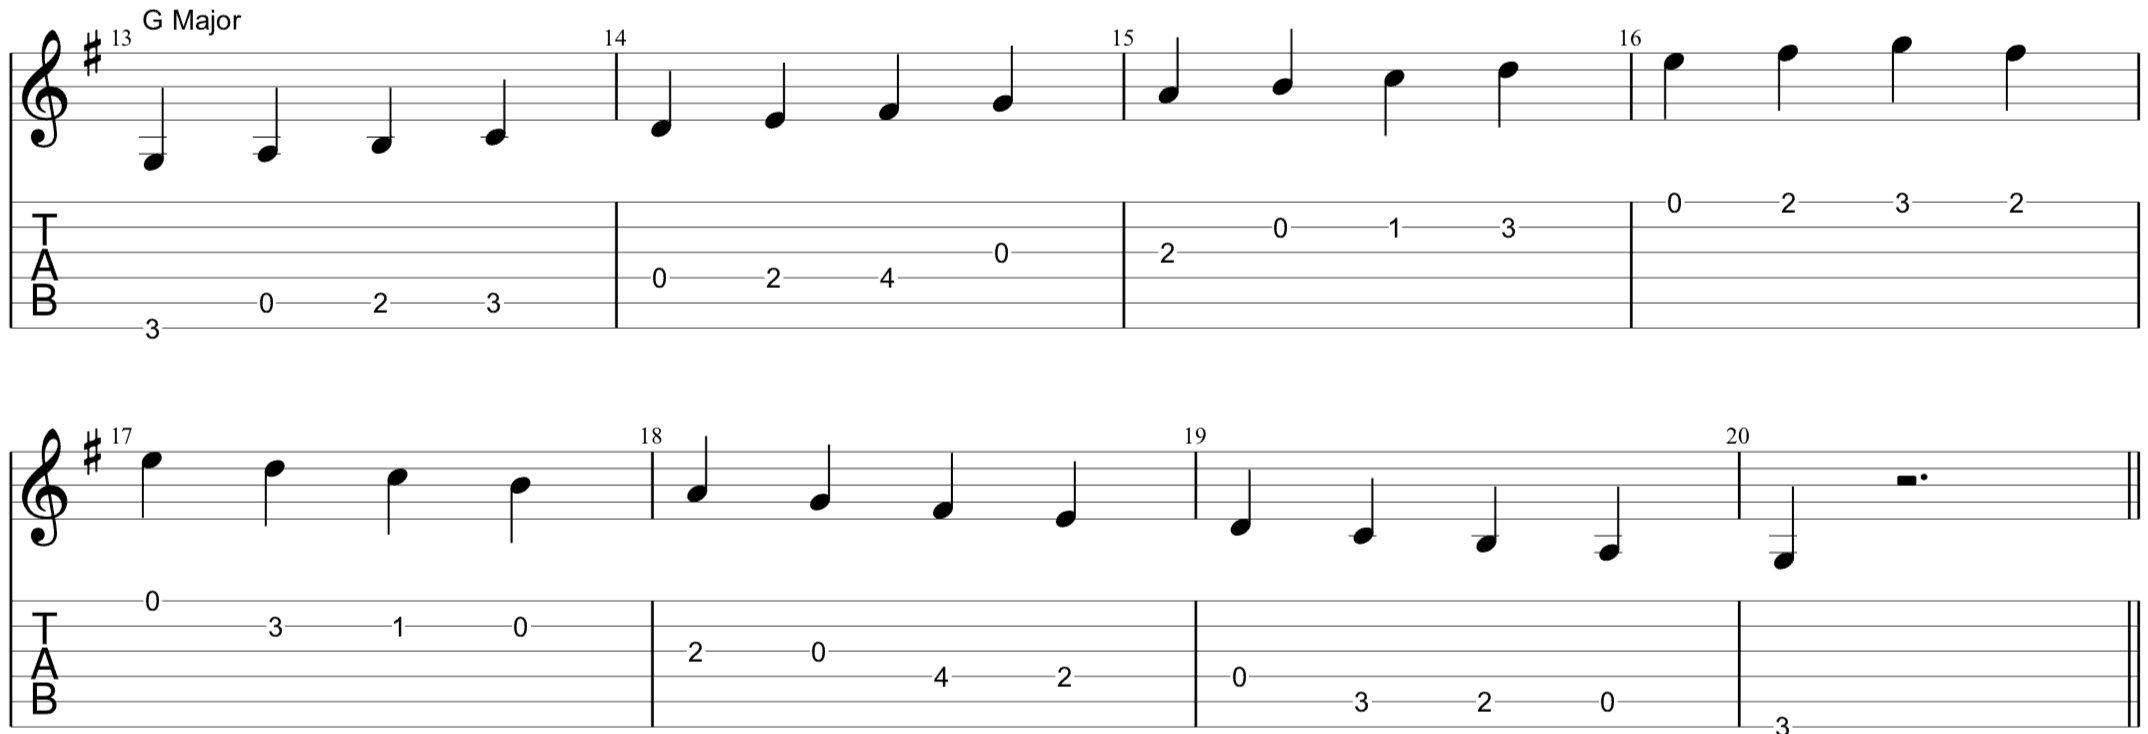 G Major Scale with TAB